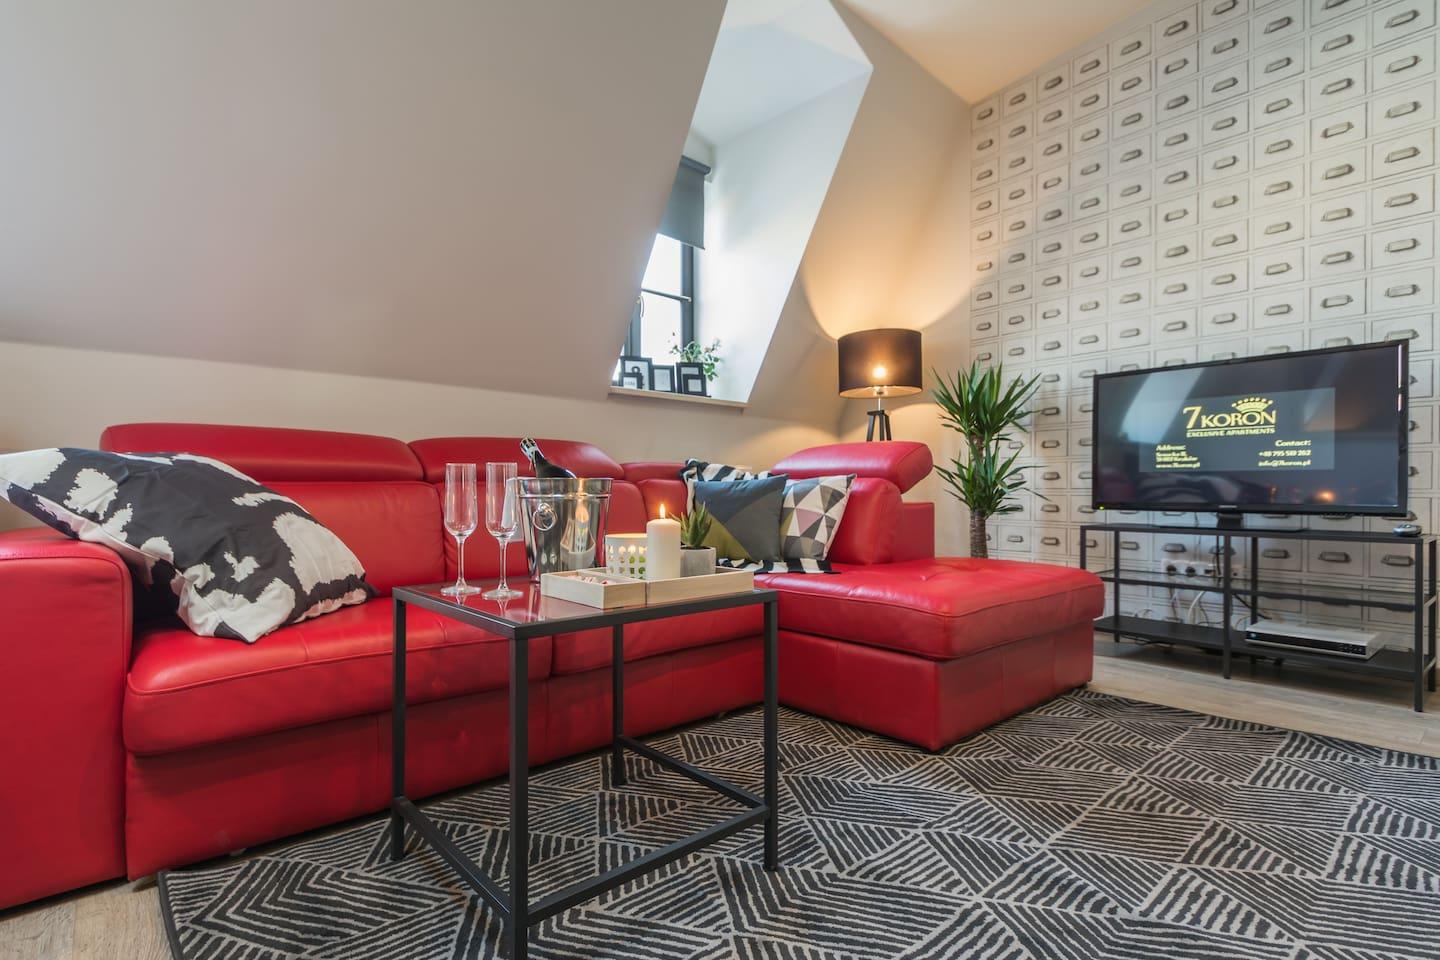 Cozy studio style with expendable sofa and sitting area.